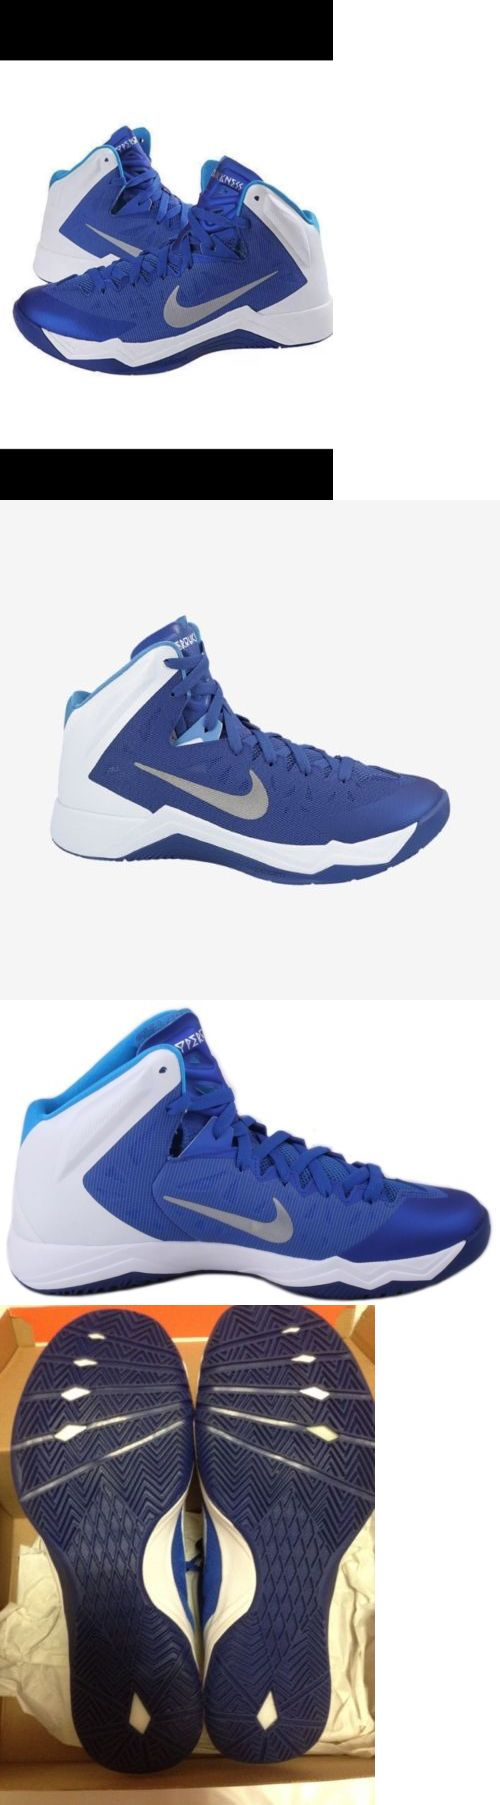 Basketball: New Mens Nike Zoom Hyper Quickness Basketball Shoes Blue White Size 10 $105 -> BUY IT NOW ONLY: $34.99 on eBay!